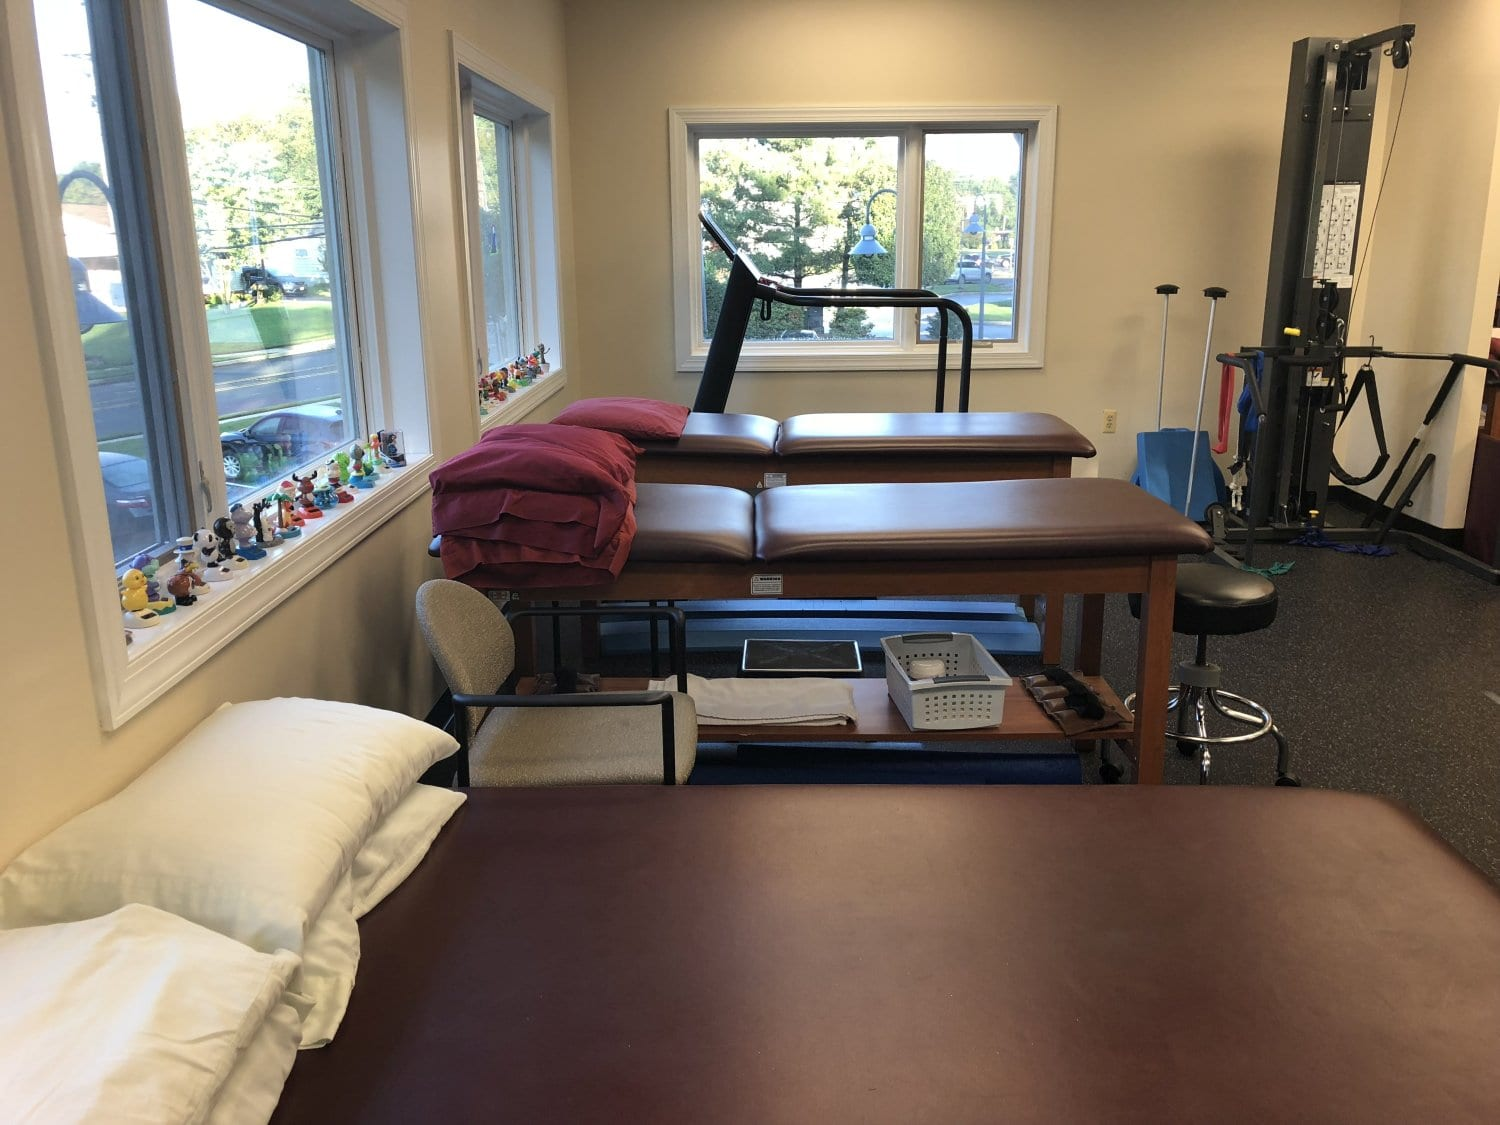 An image of three beds at our physial therapy clinic in Hazlet, New Jersey.